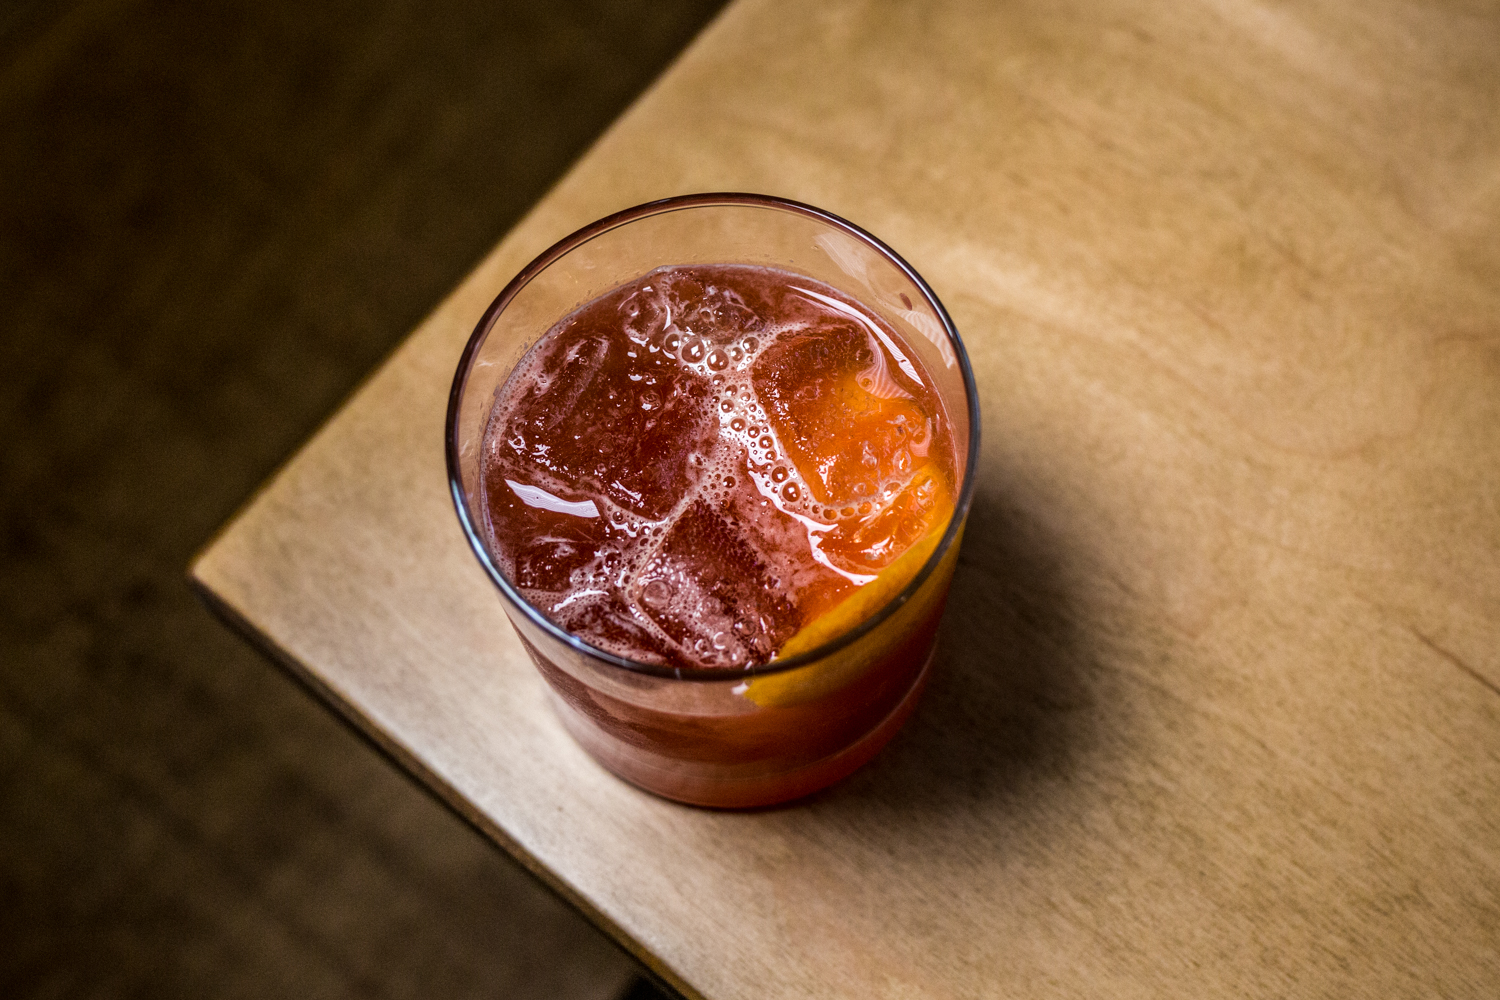 Negroni with sake instead of gin / Image: Catherine Viox // Published: 10.21.19